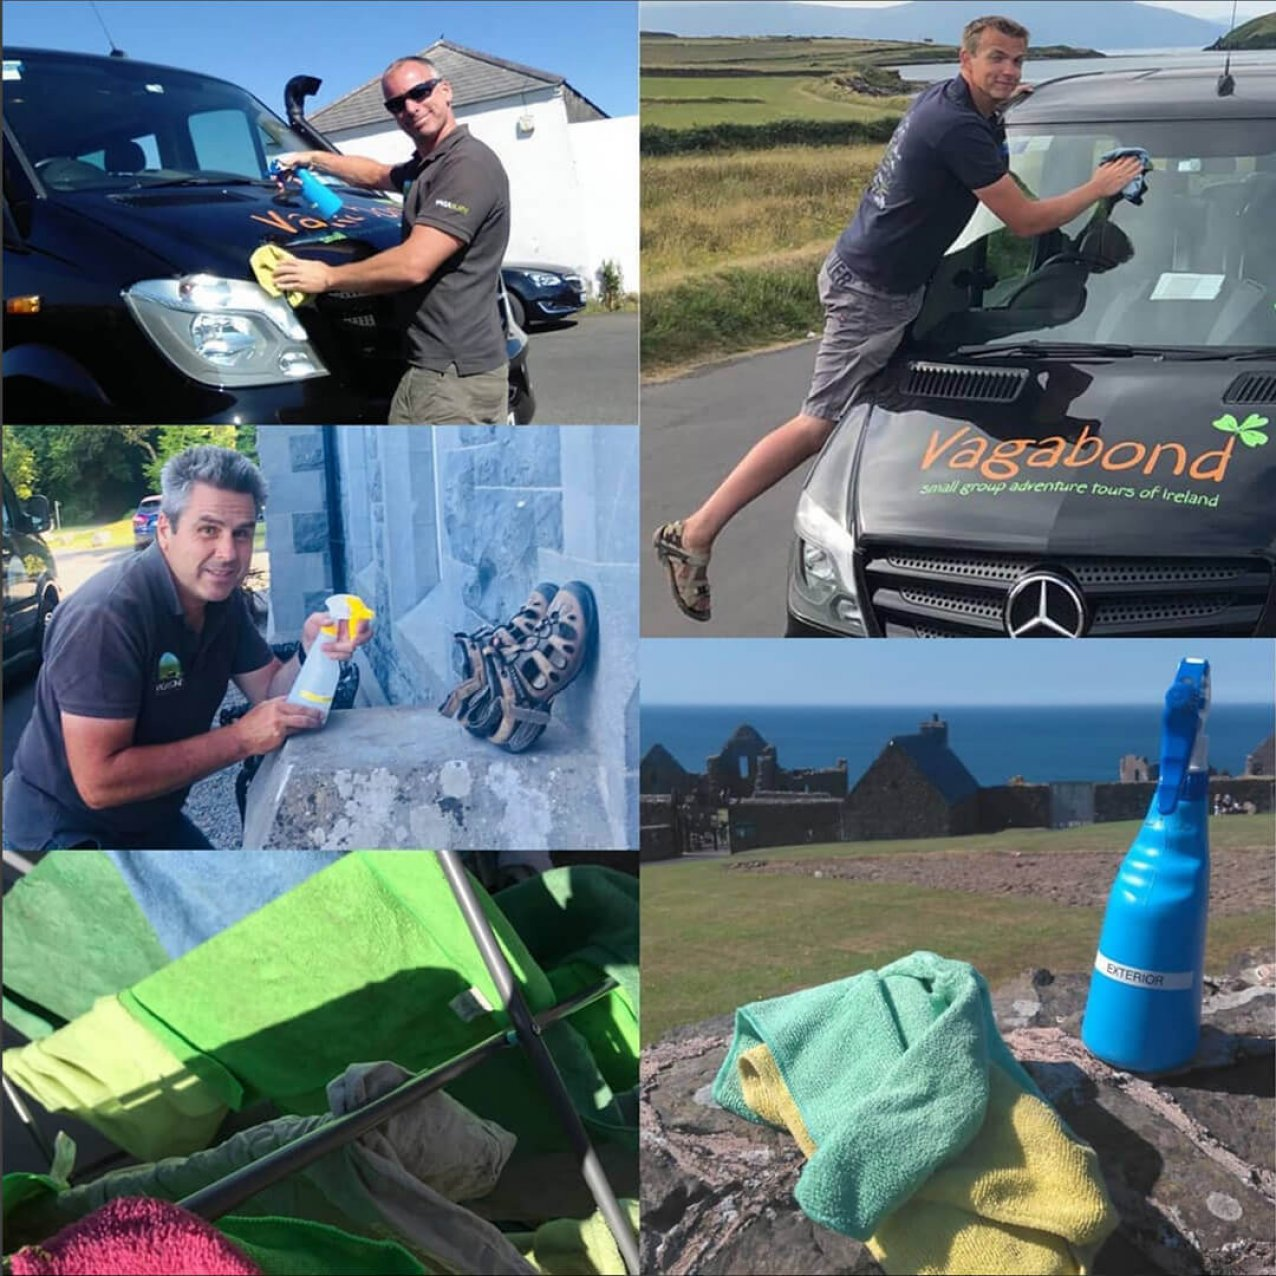 Collage of Vagabond Tours of Ireland guides cleaning buses